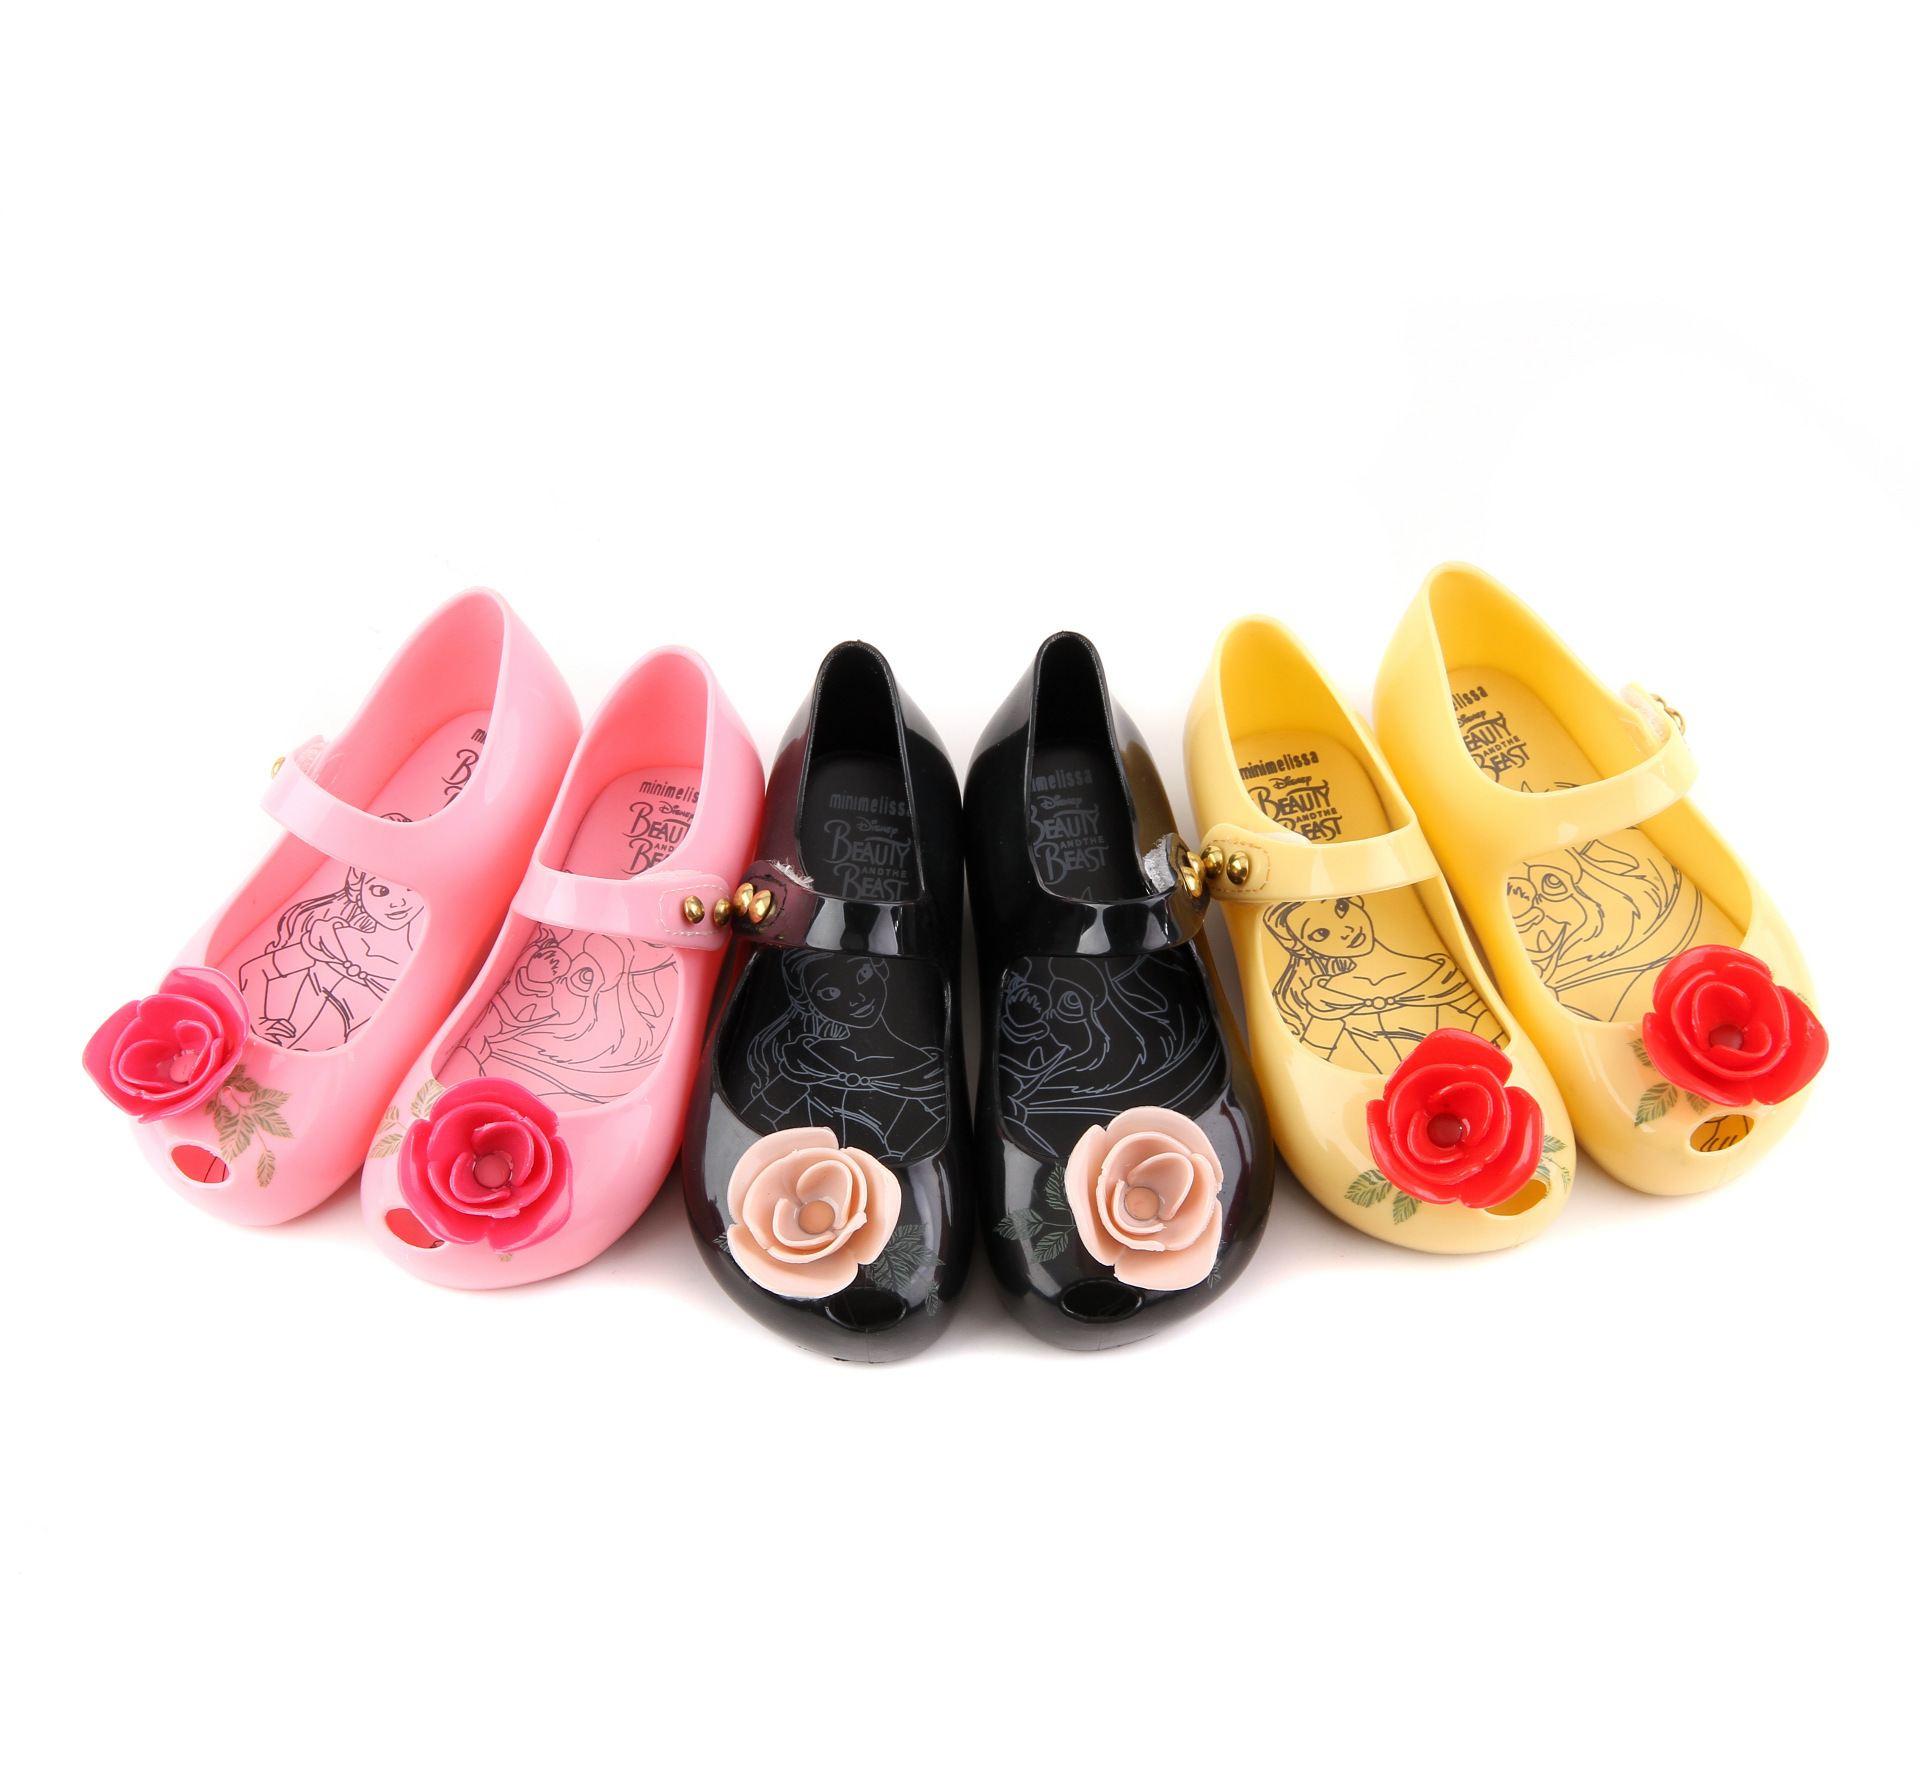 Children's Summer Shoes Mini Melissa Beauty And The Beast Rose Jelly Shoes Kids Girls Sparkle Bowknot Fashion Sandals SH100